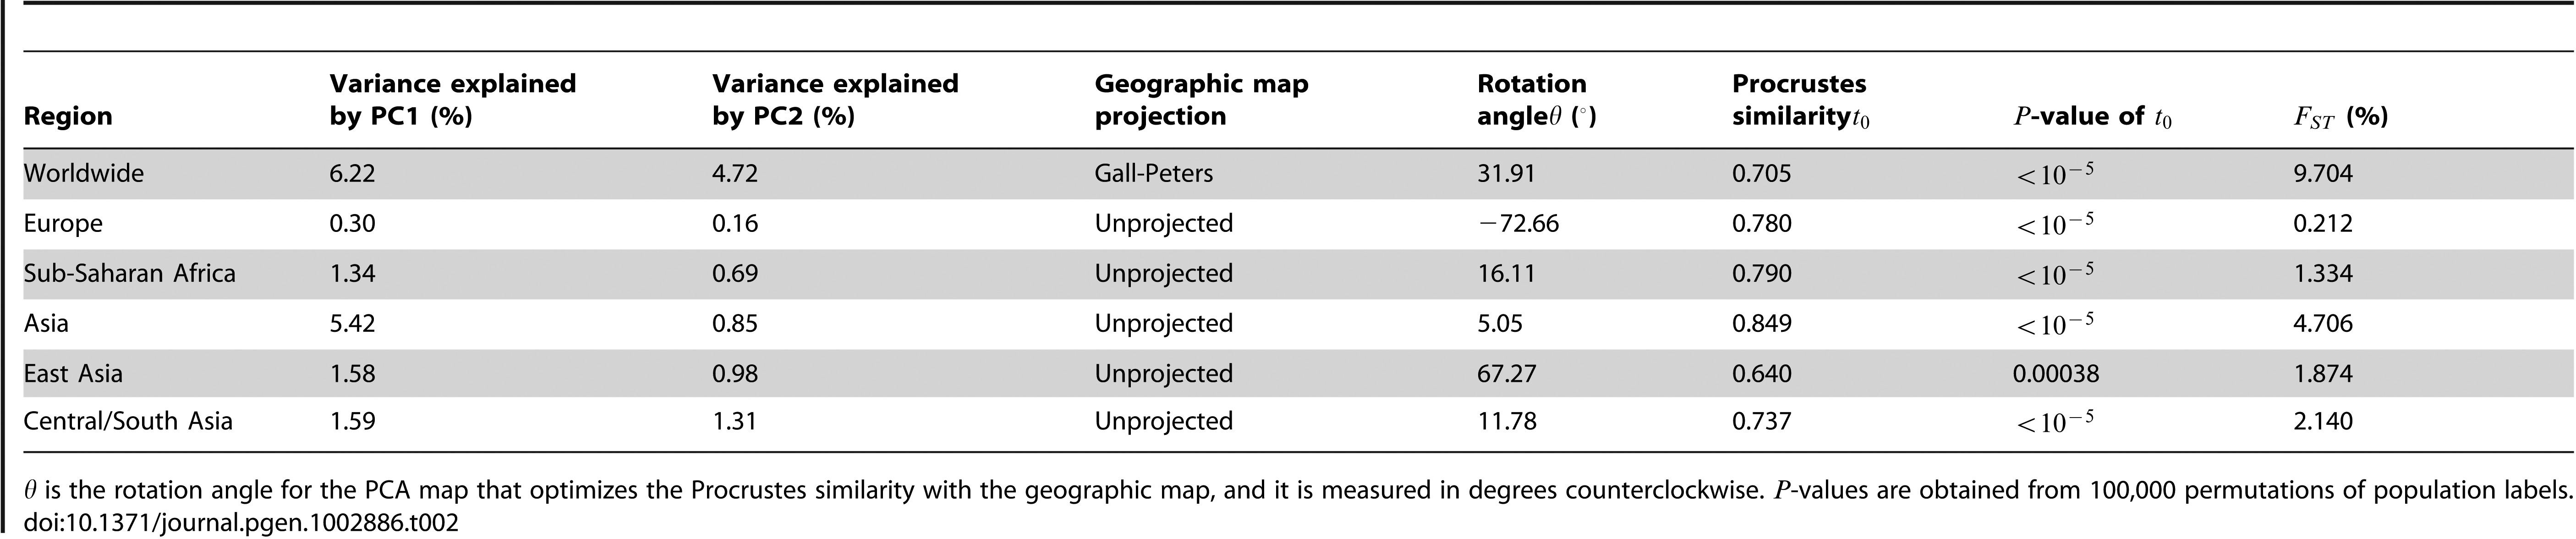 Summary of the results for datasets from different geographic regions.